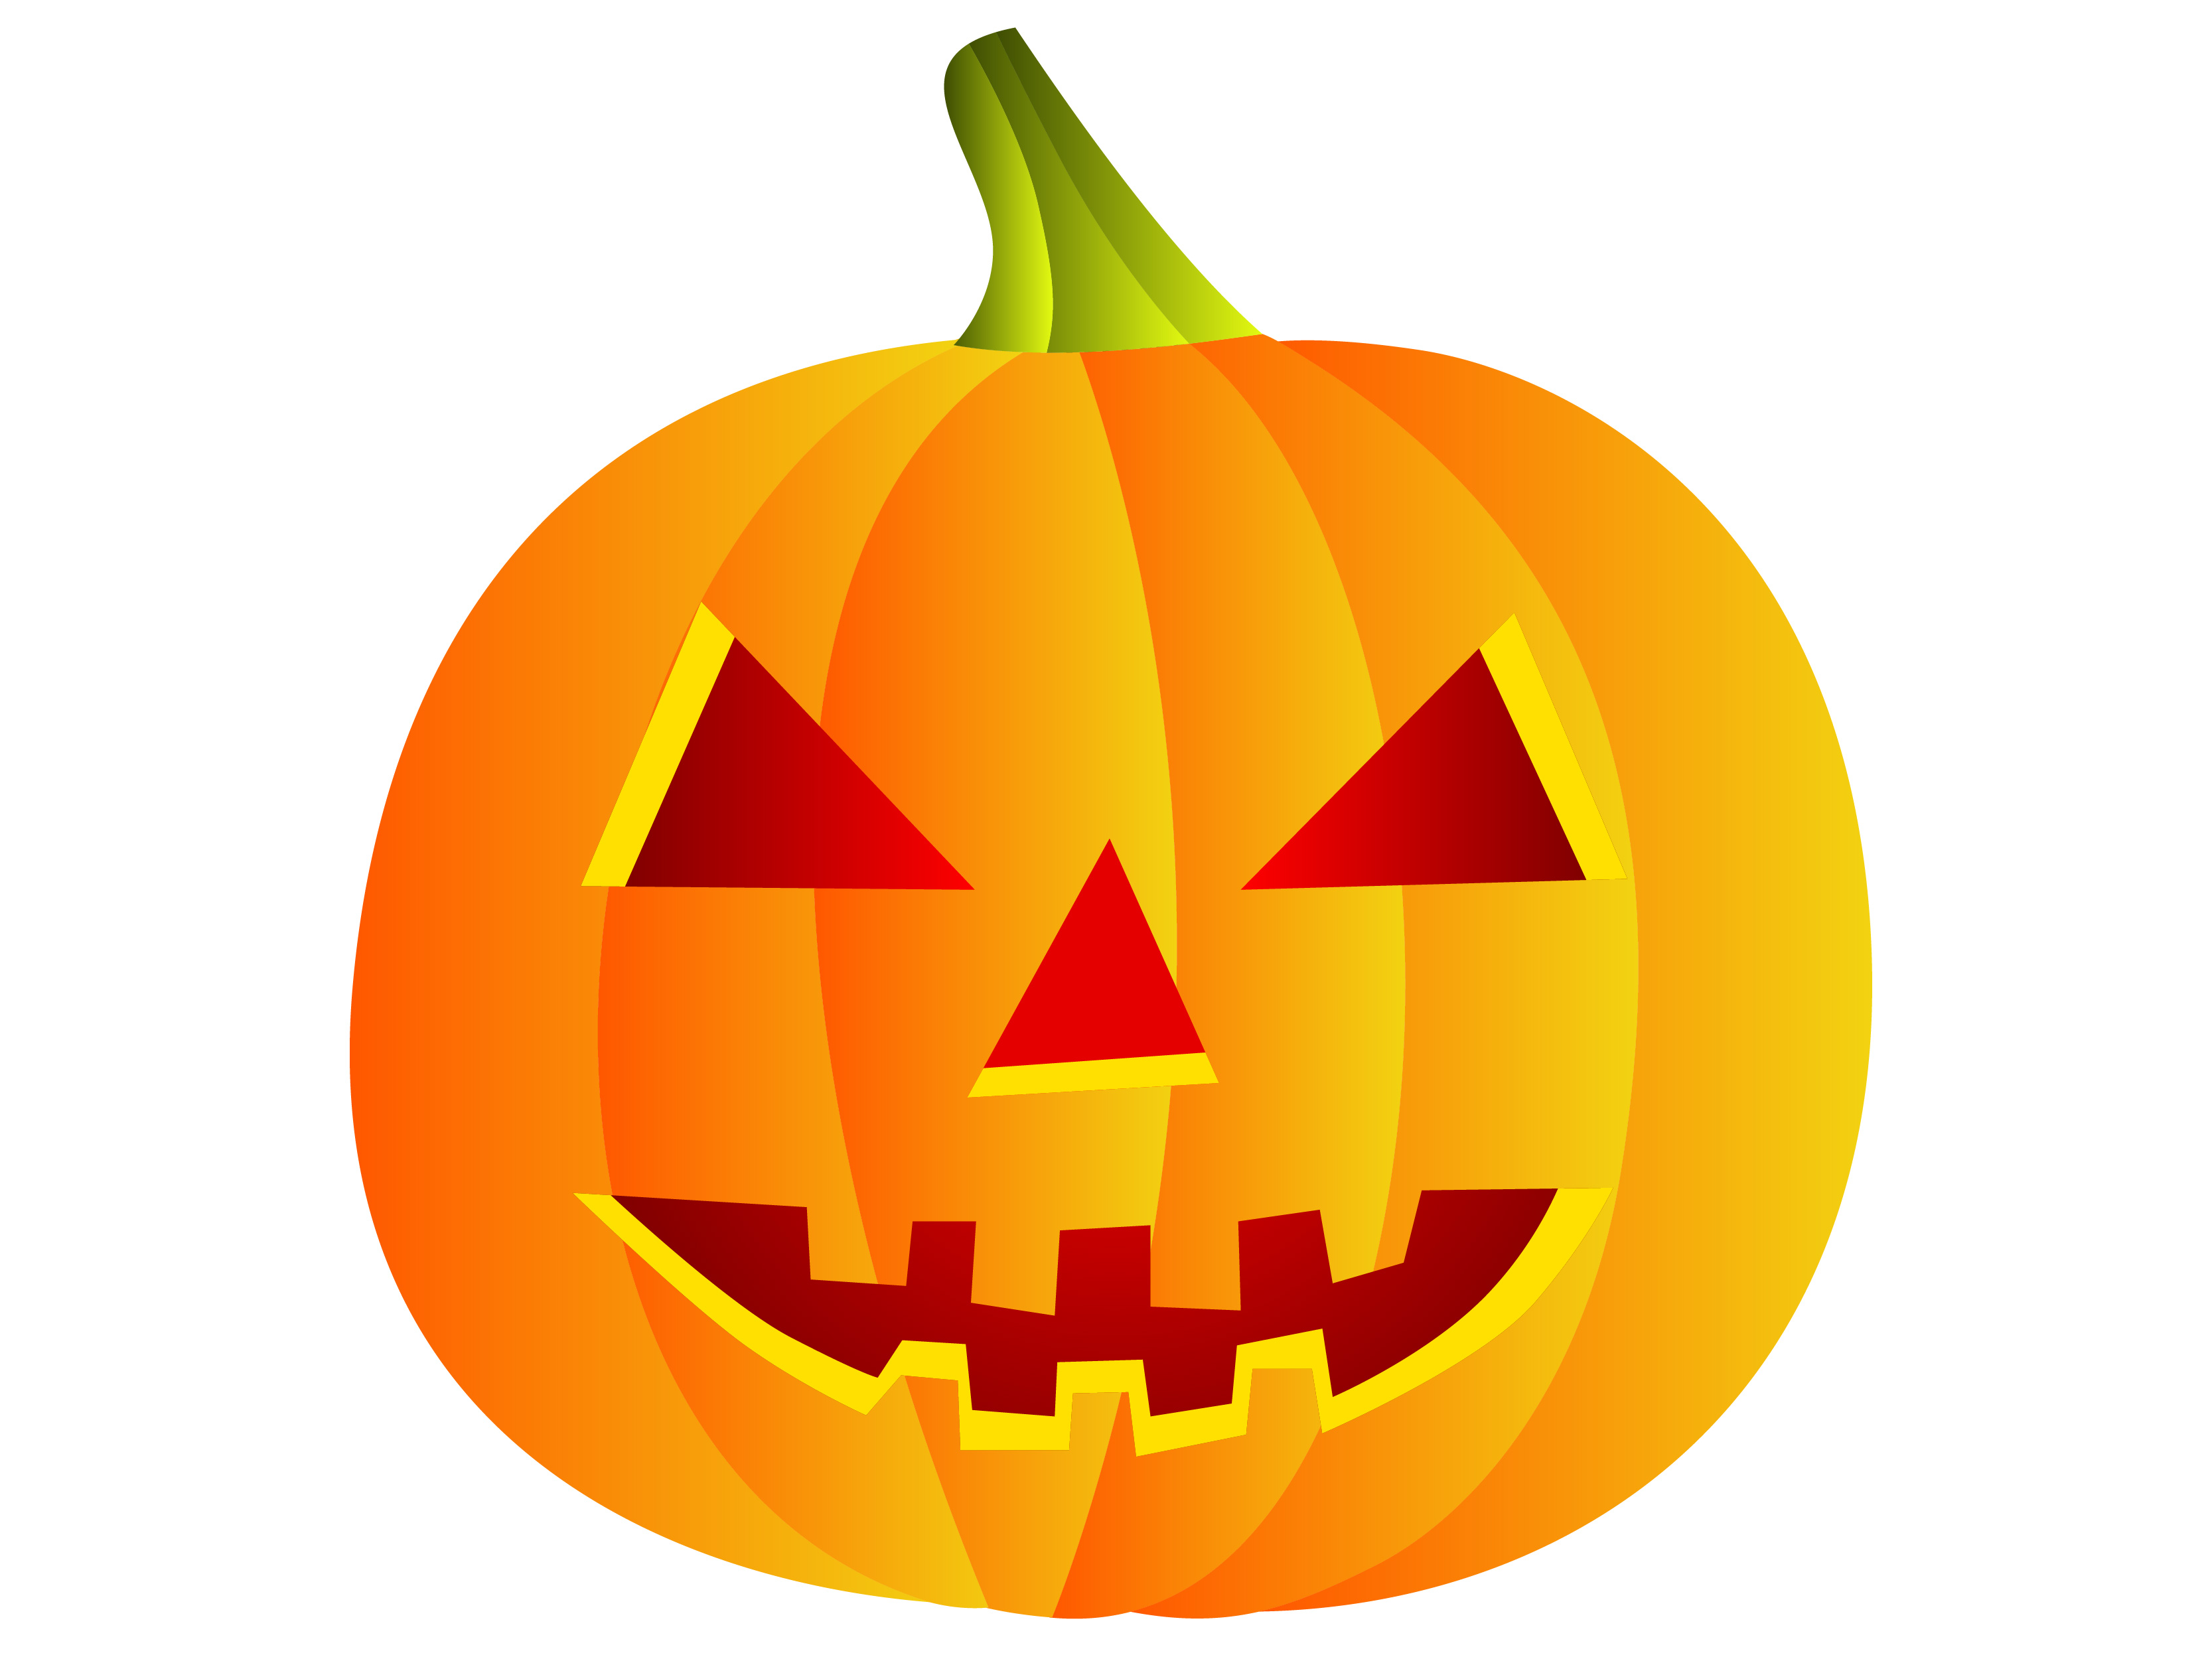 13 Happy Halloween Pumpkin Vector Images